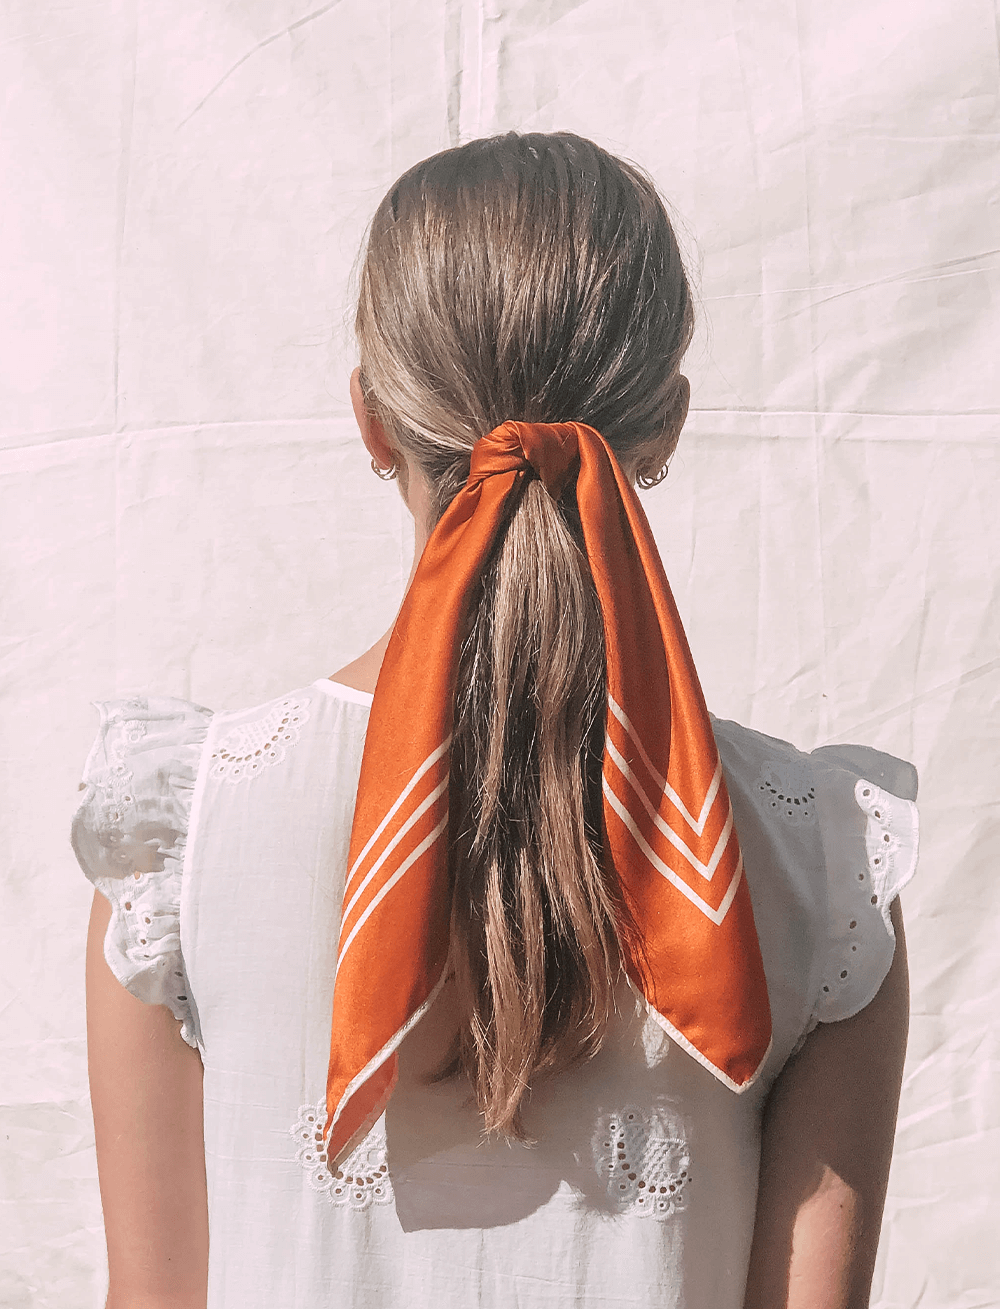 Lio Mara Classic Orange Silk Tencel Sustainable Scarf UK Worn Round Ponytail